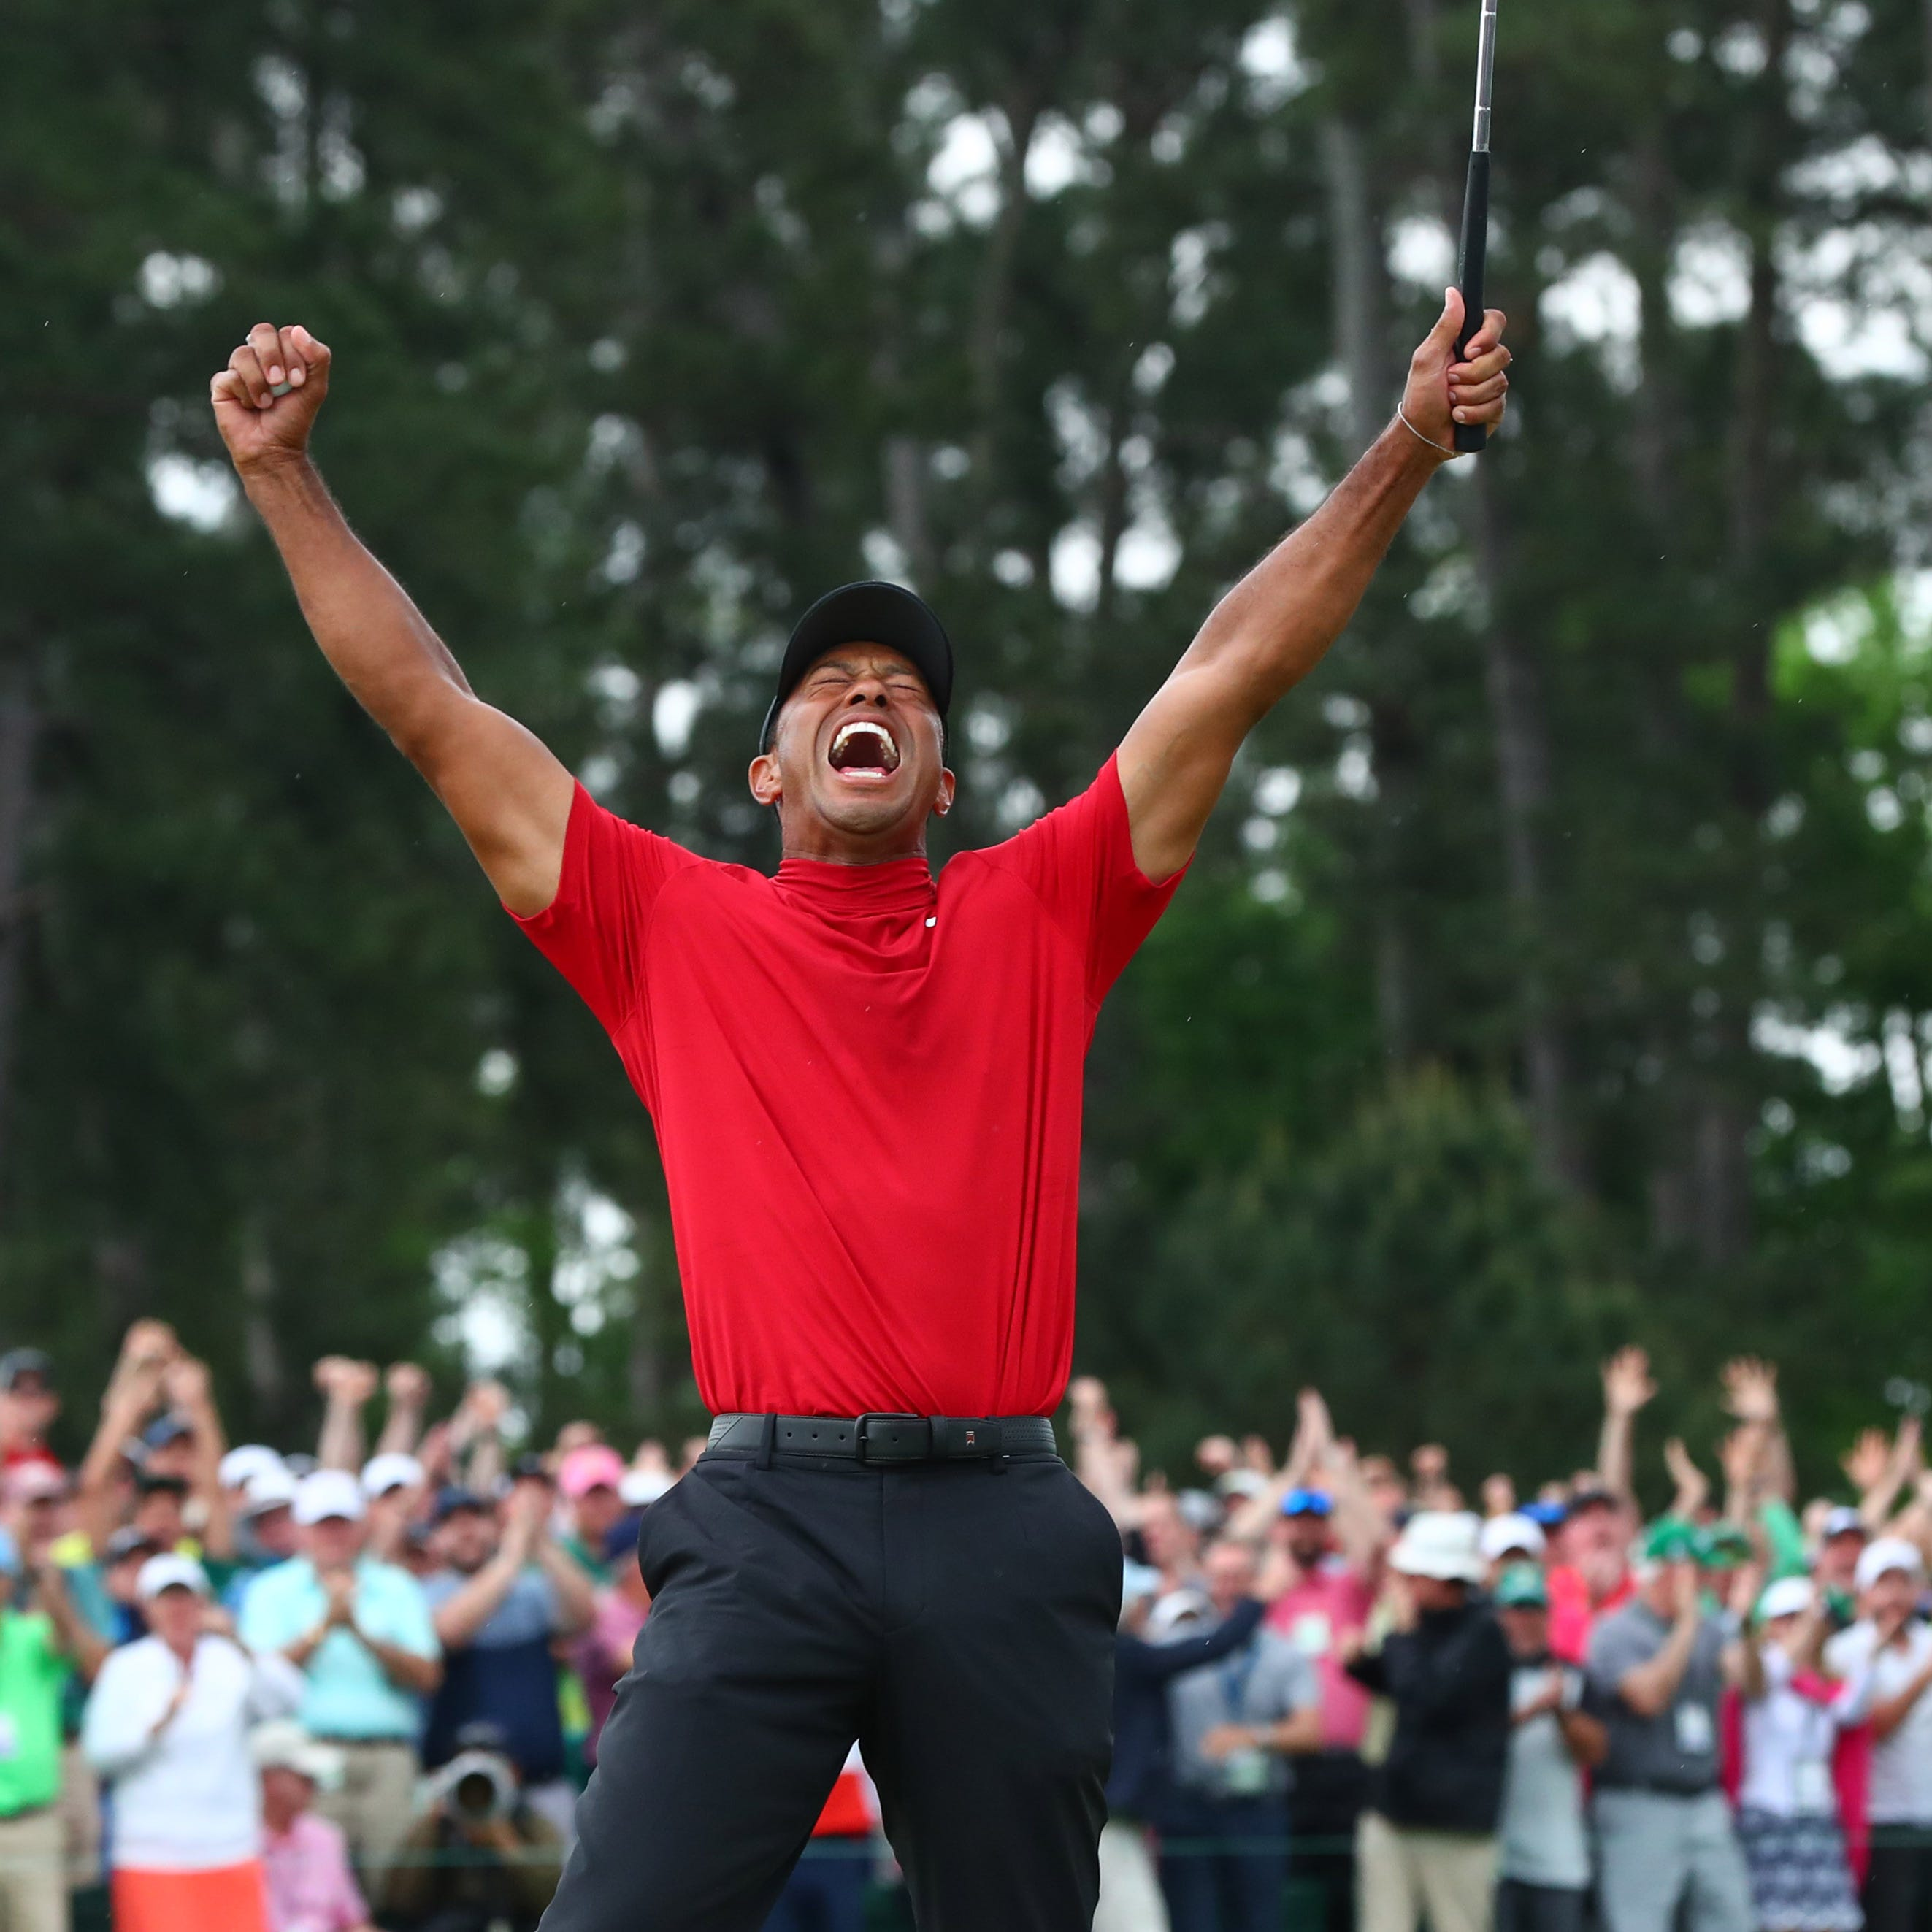 What does Tiger Woods' Masters win prove? Why does it mean so much?